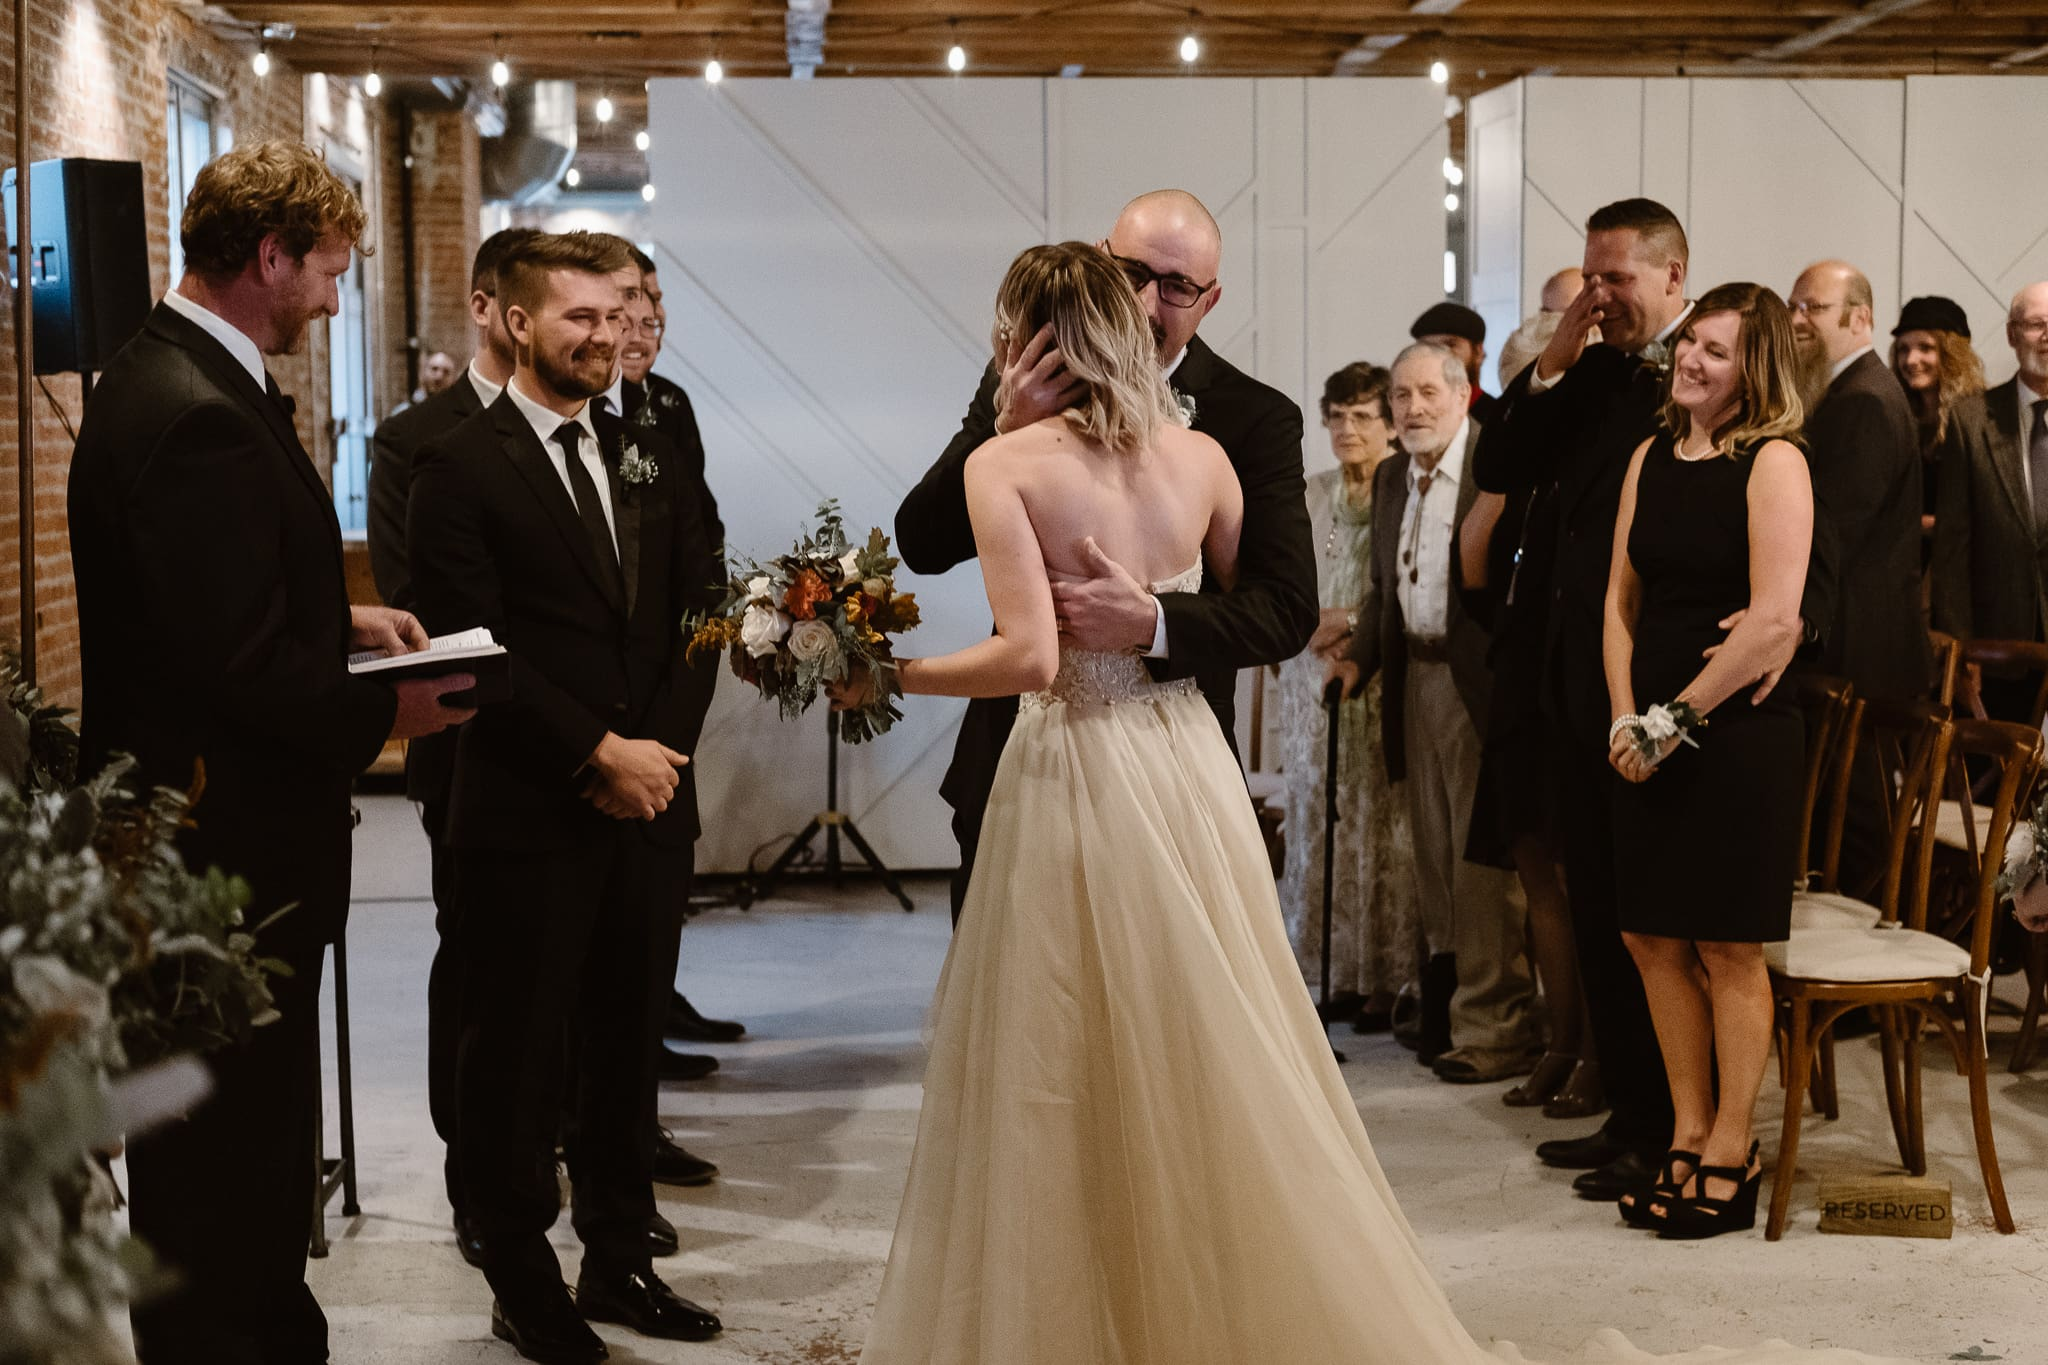 St Vrain Wedding Photographer   Longmont Wedding Photographer   Colorado Winter Wedding Photographer, Colorado industrial chic wedding ceremony, bride walking down aisle with her father